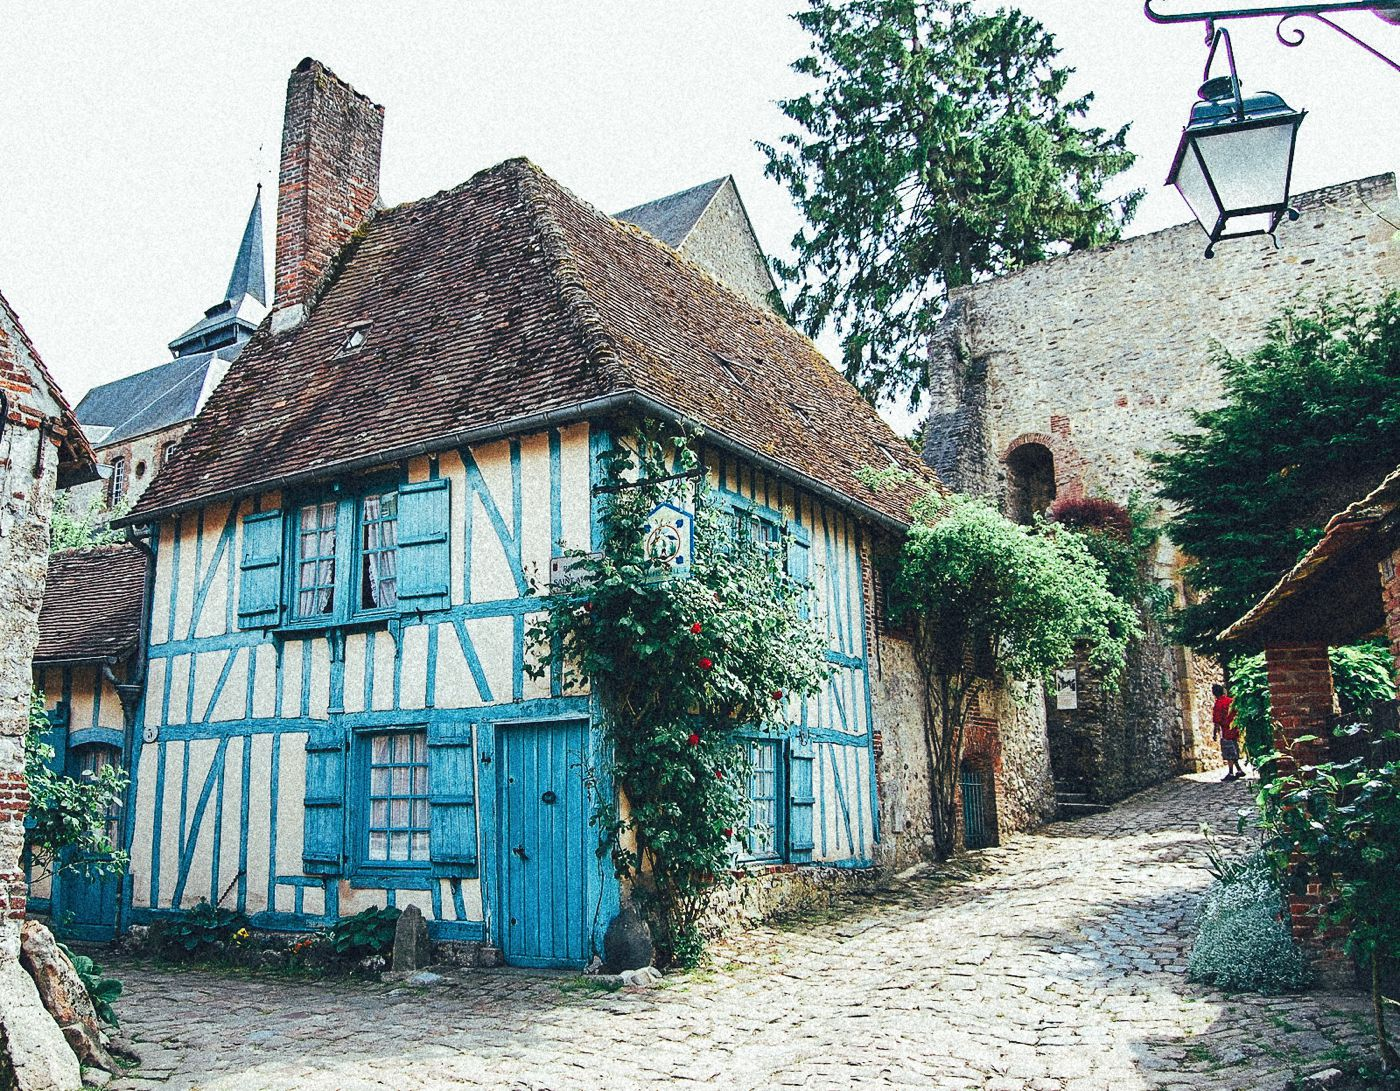 The 25 Most Beautiful Villages To Spend A Weekend In France! (7)